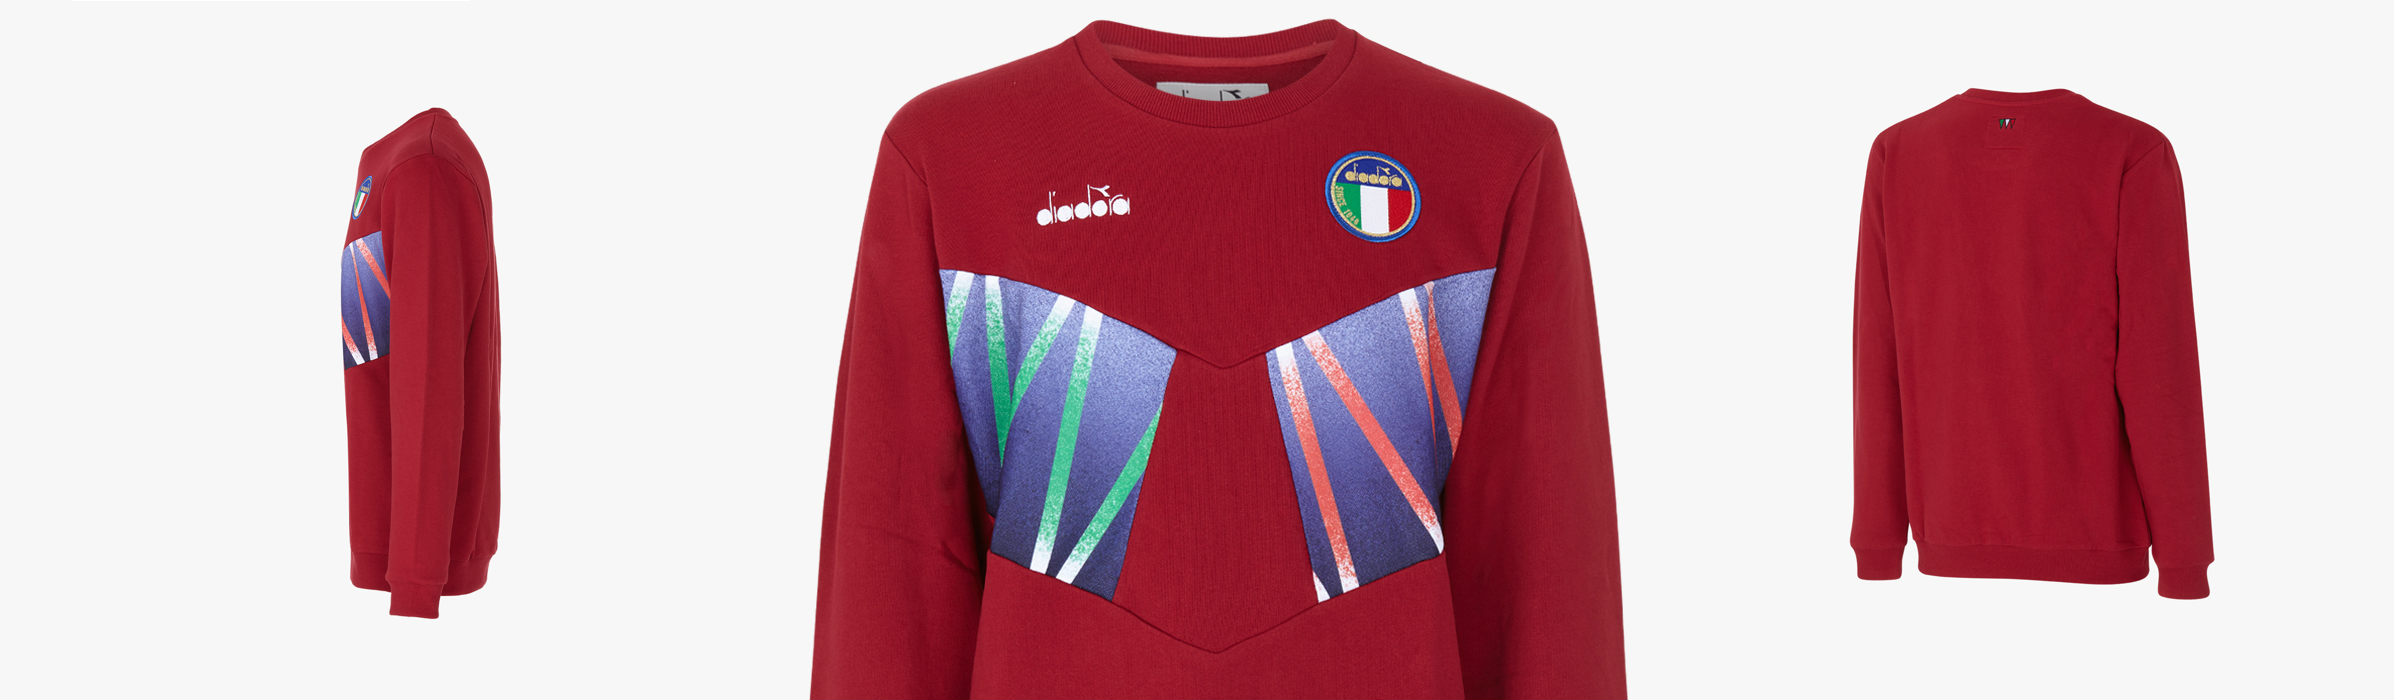 Diadora Rb94 Crew Sweat Blue Rosso Full